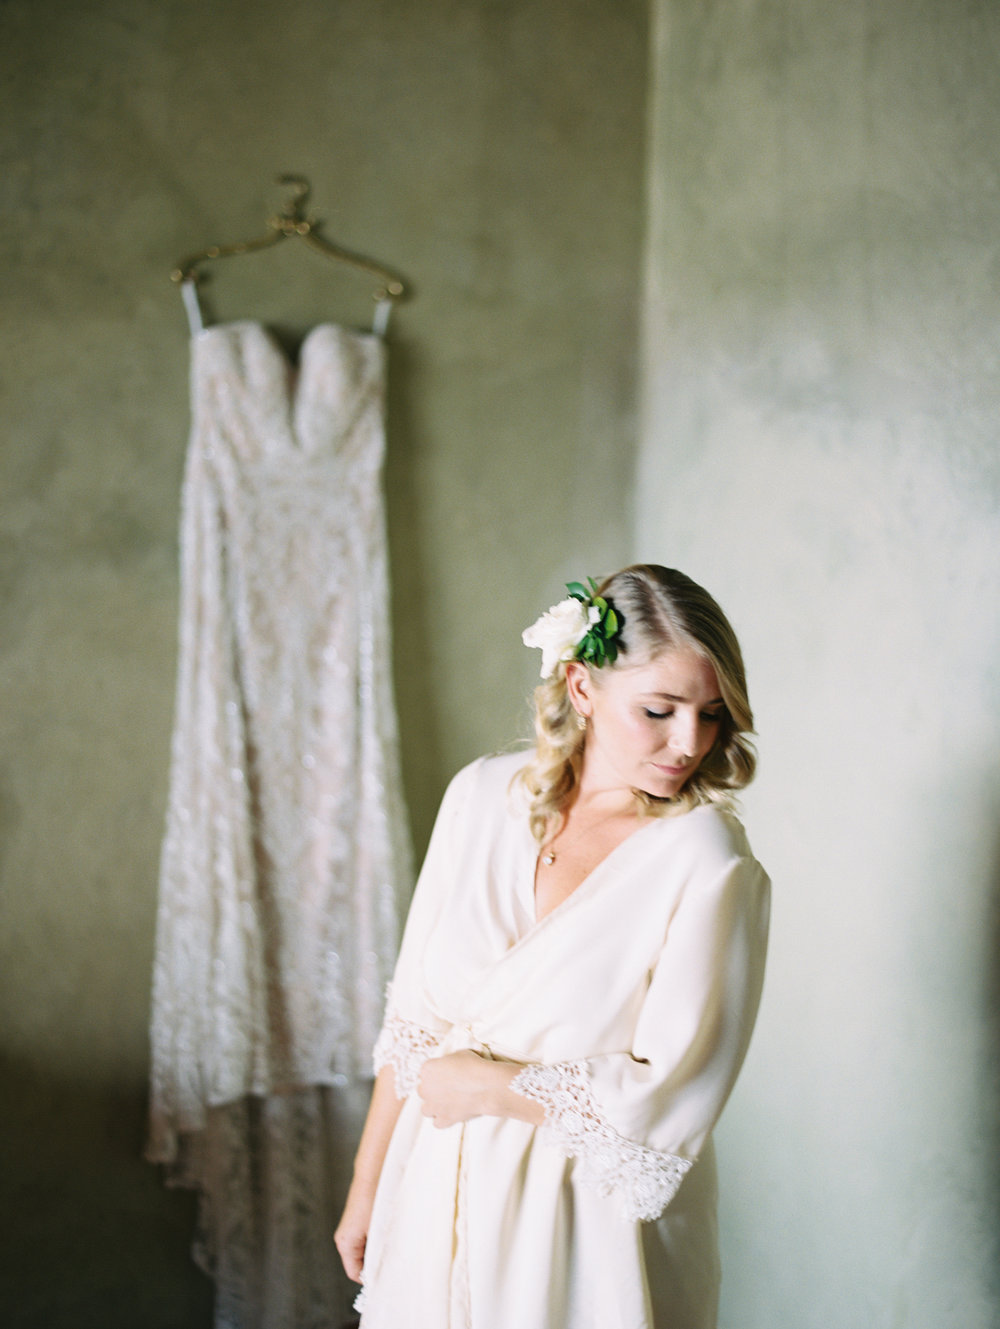 165-fine-art-film-photographer-destination-wedding-nicaragua-jacob+cammye-brumley & wells.jpg